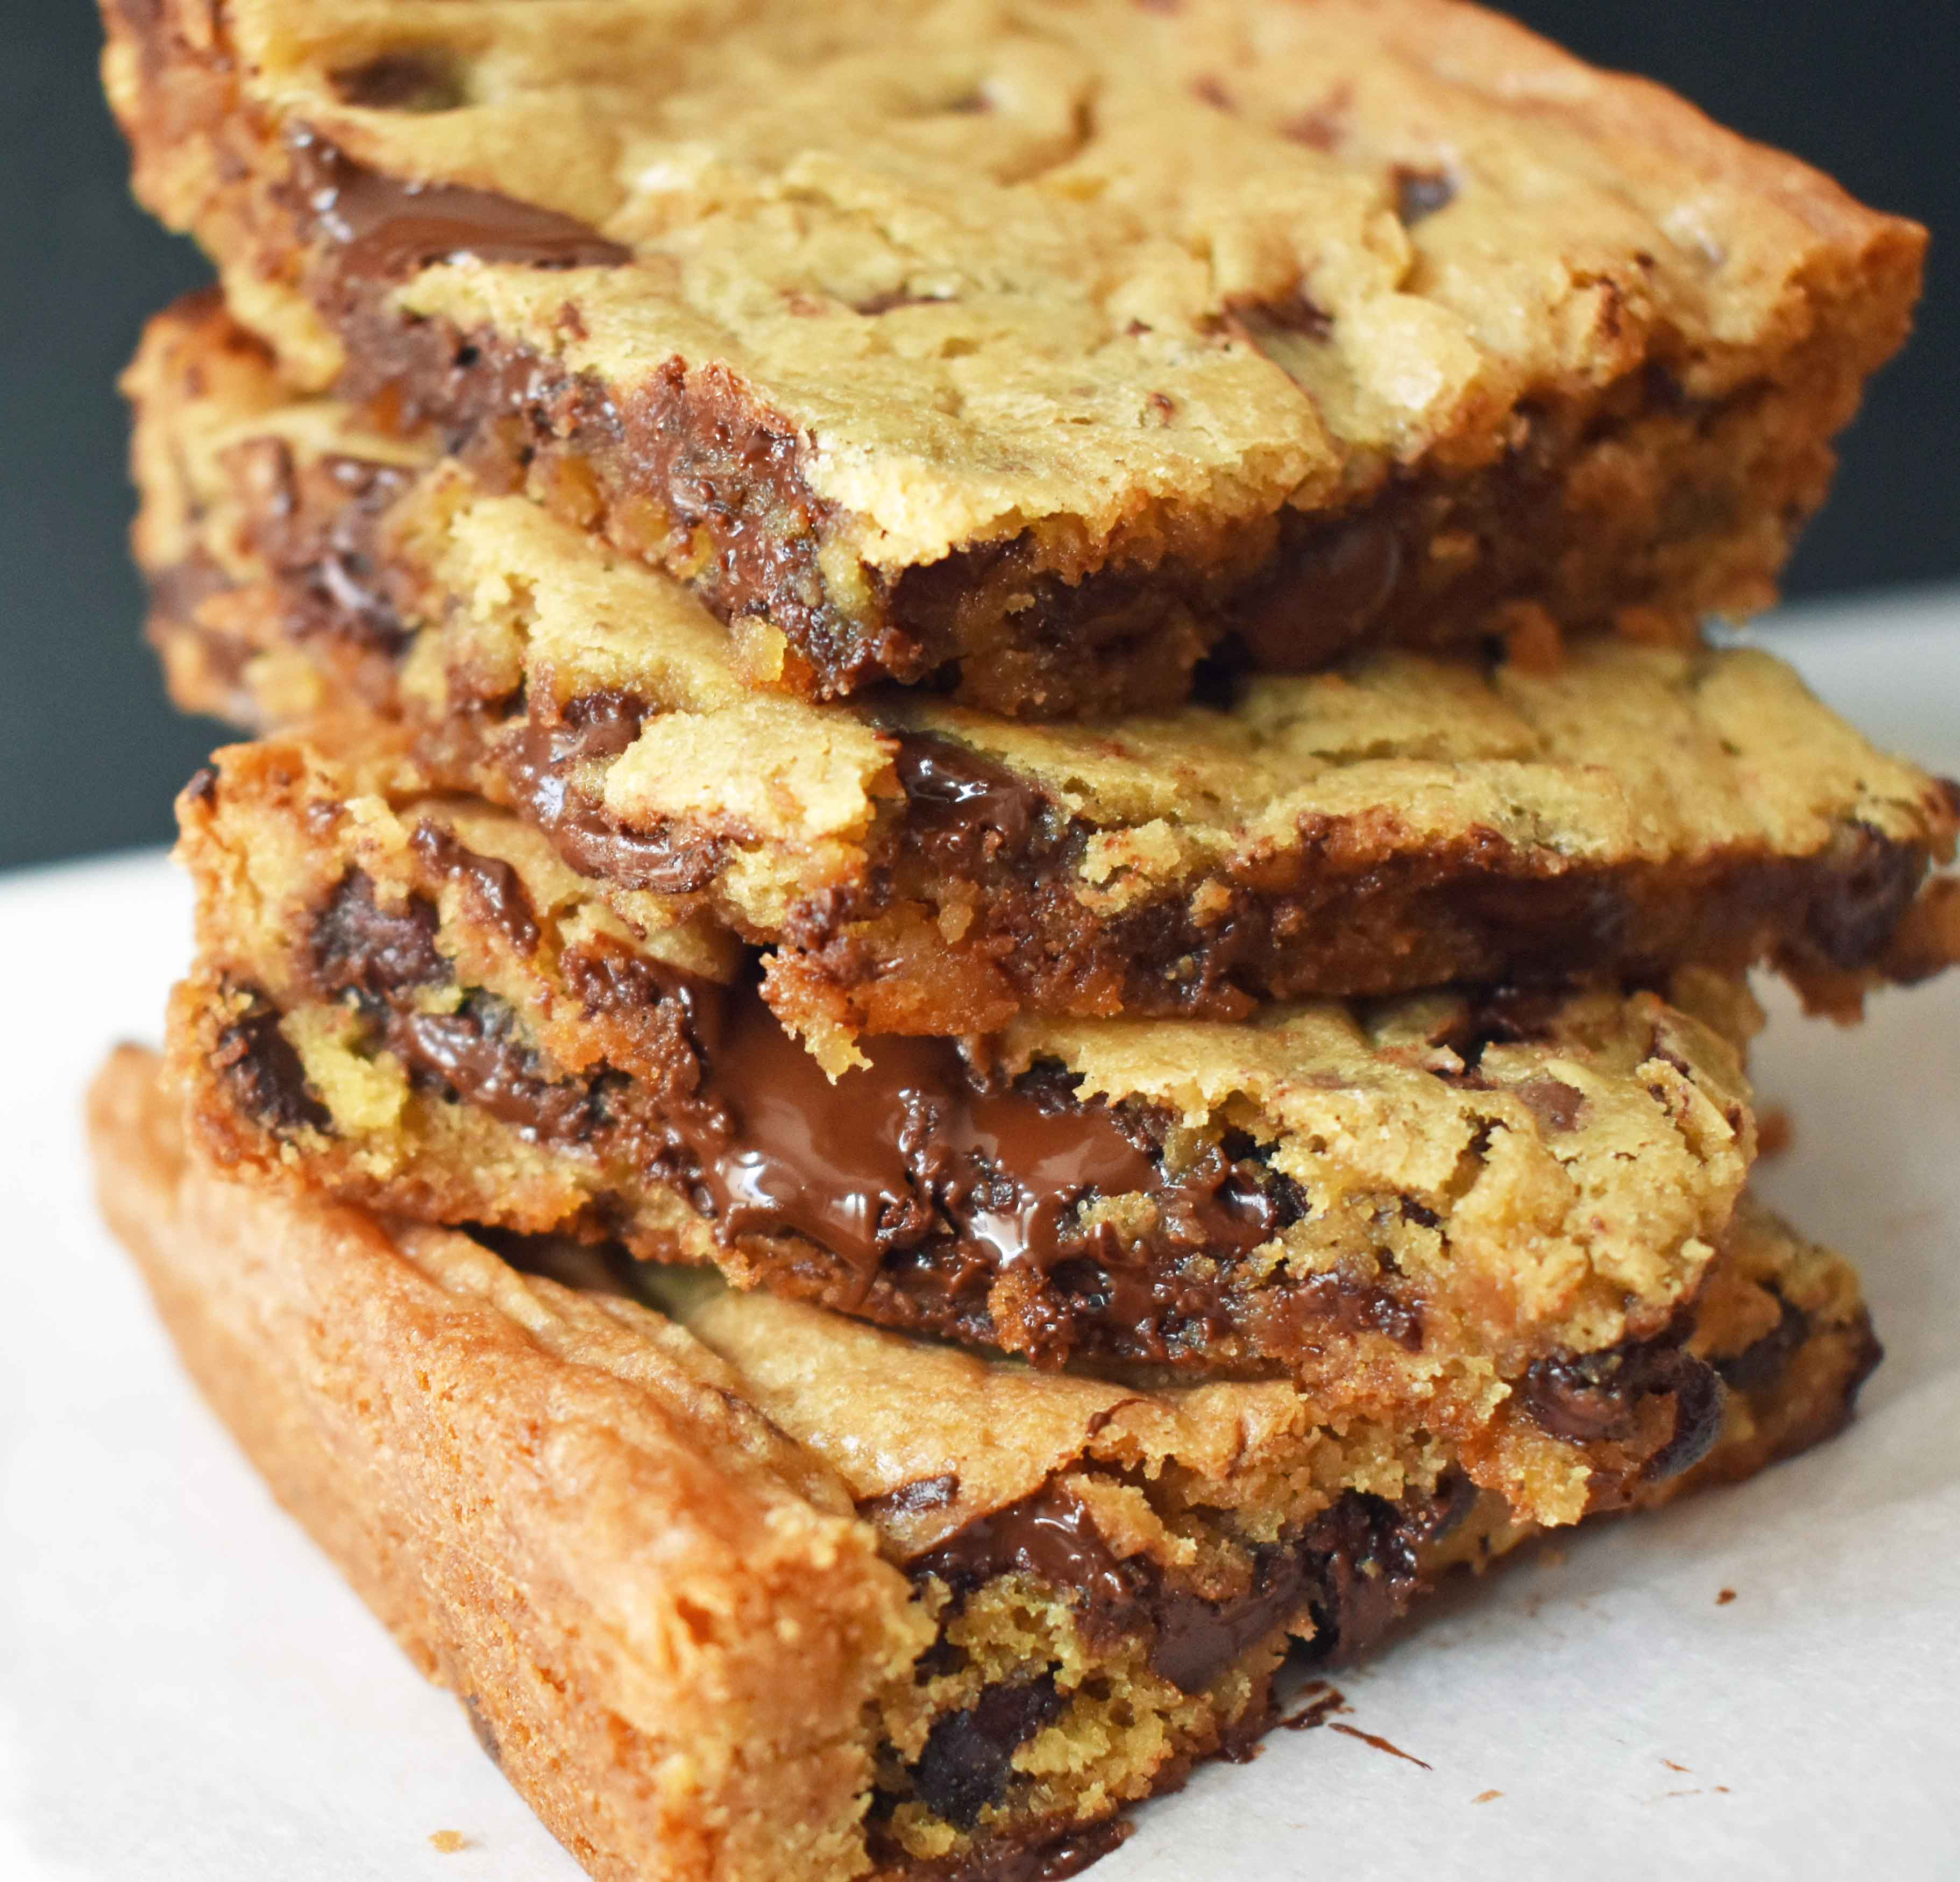 Chocolate Chip Cookie Bars. Classic buttery chocolate chip cookies in a bar. A favorite cookie bar recipe! www.modernhoney.com